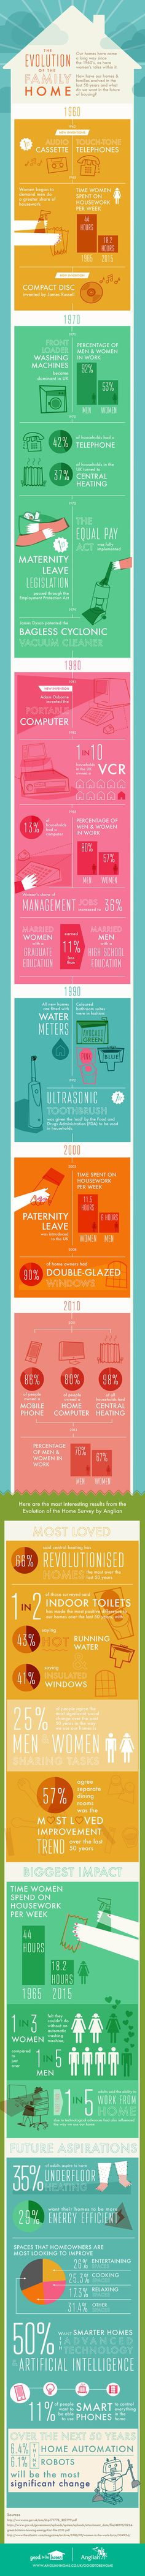 The Evolution of the Family Home #infographic #HomeImprovement #Garden #Lifestyle